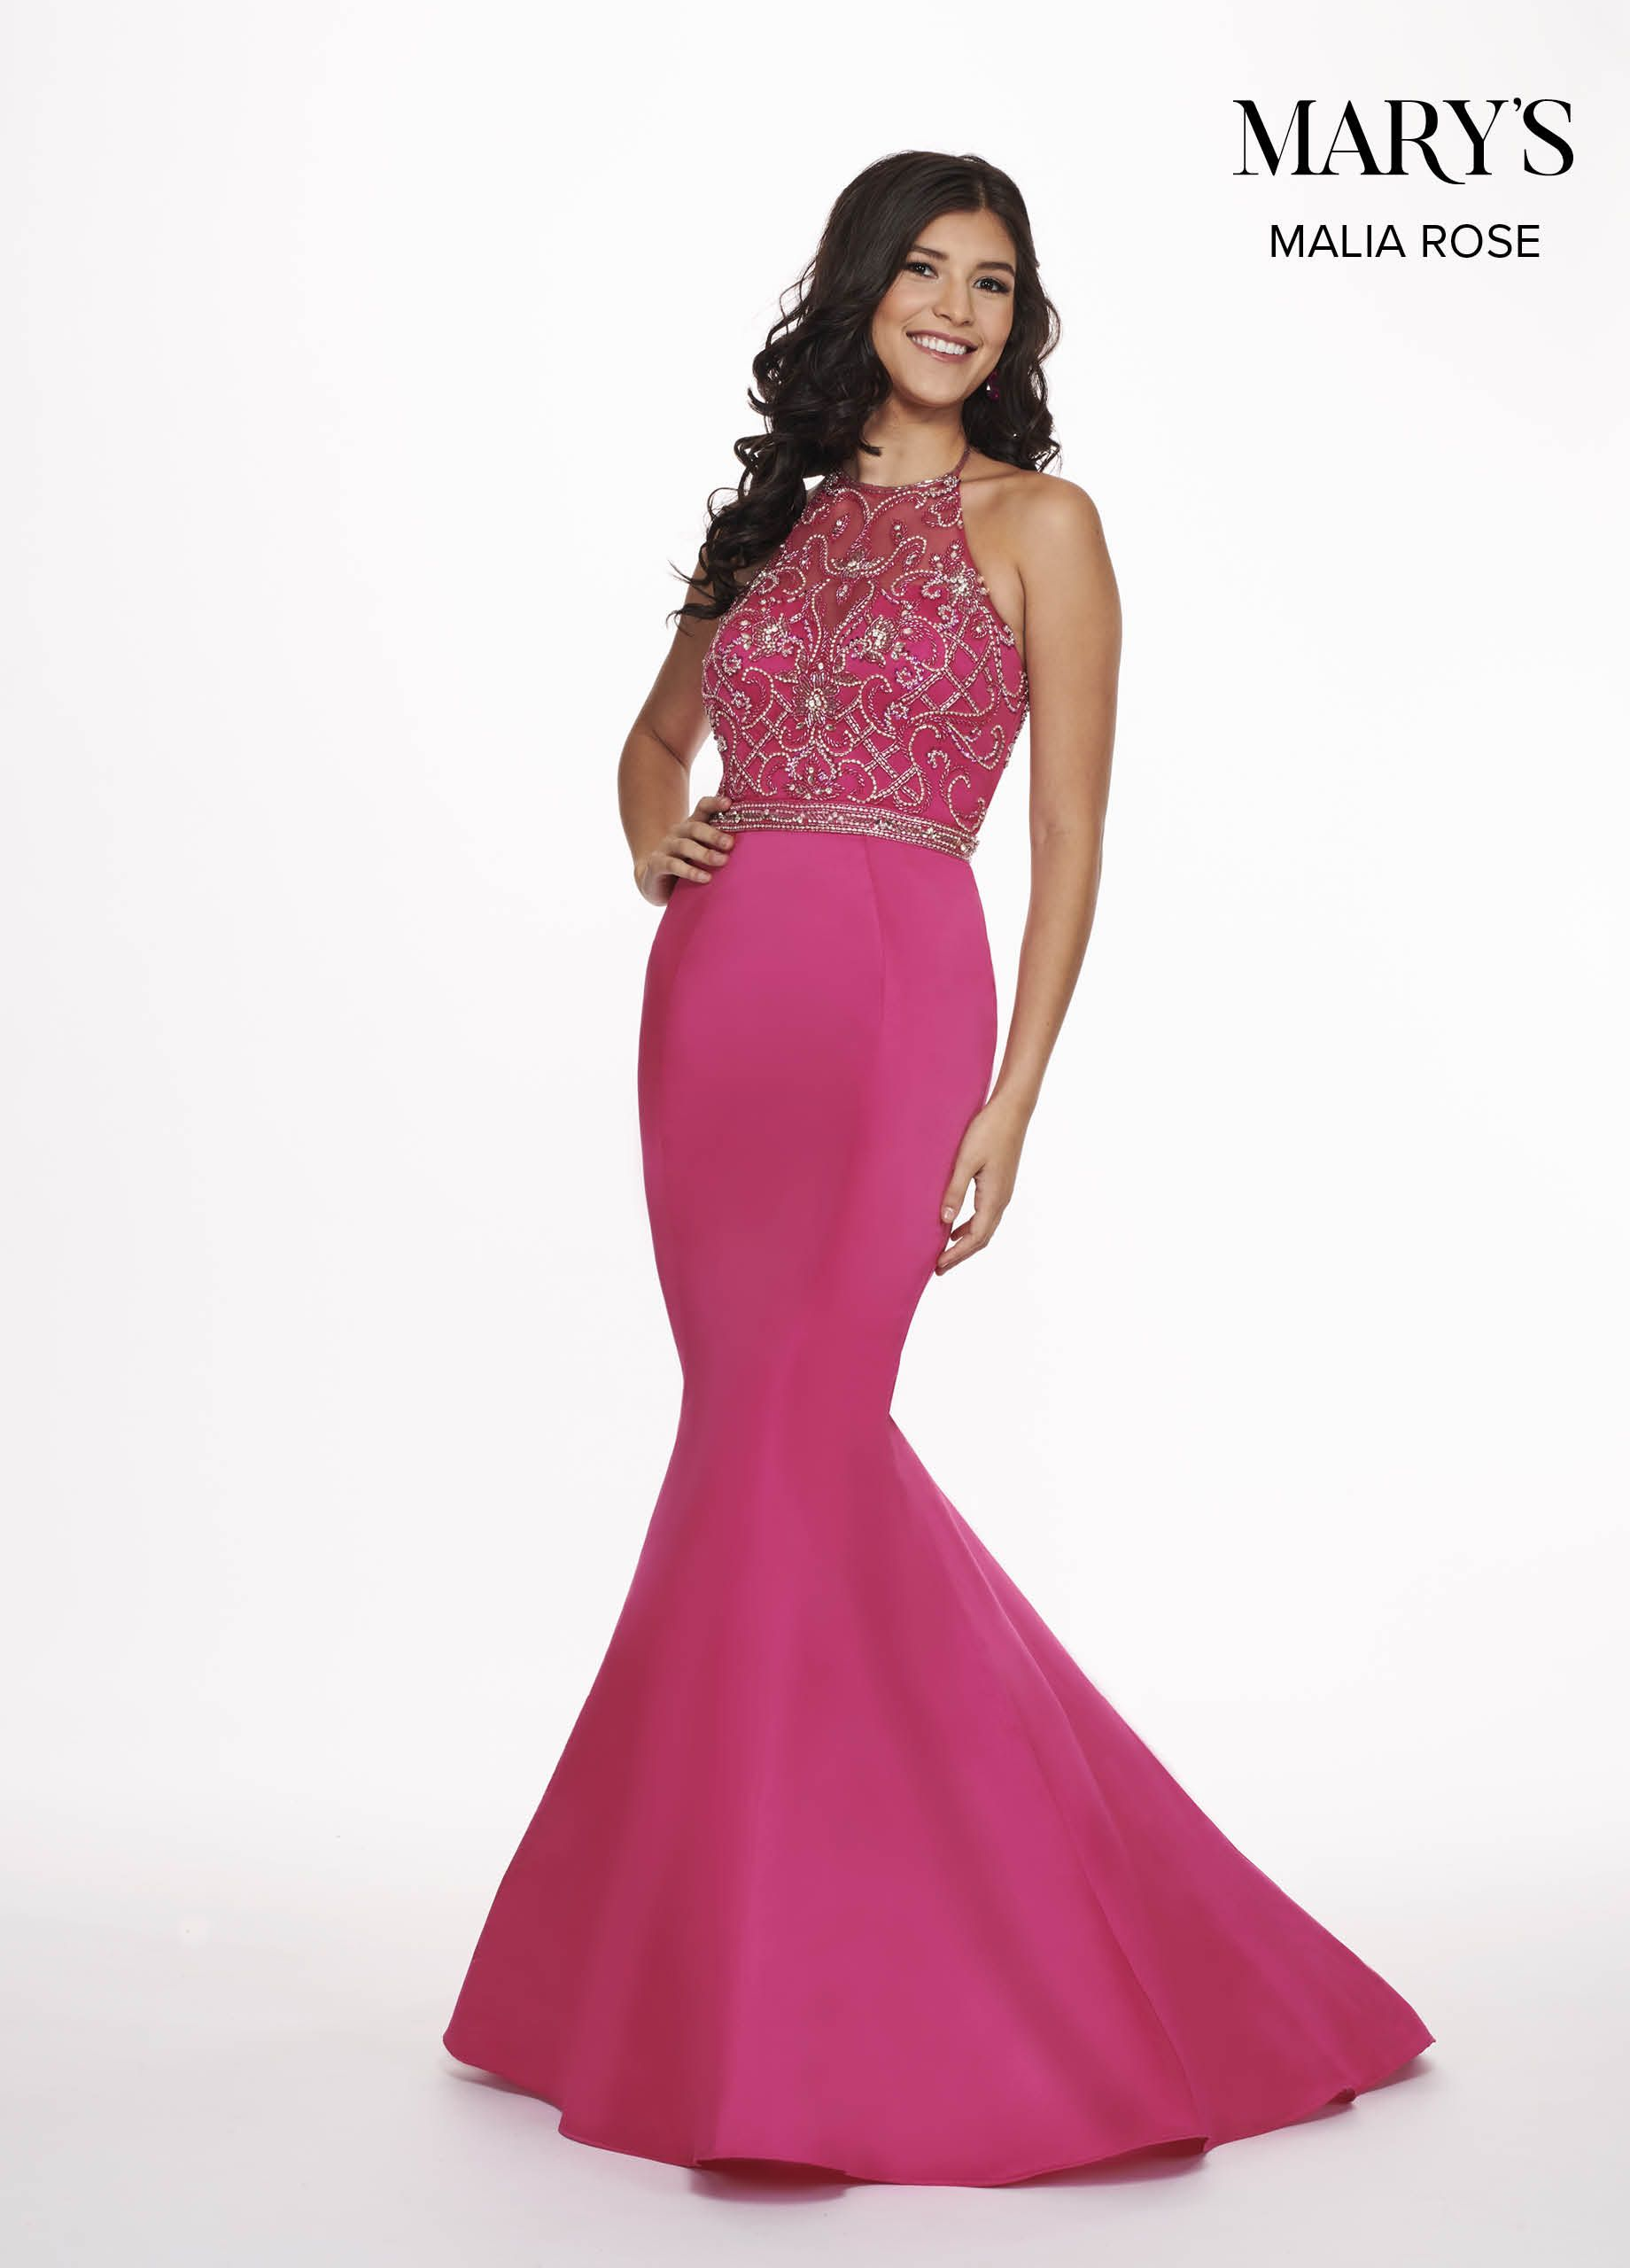 b0649b1edeaf1 Satin mermaid prom dress with beaded halter top, beaded natural waistline,  open back, and sweep train.